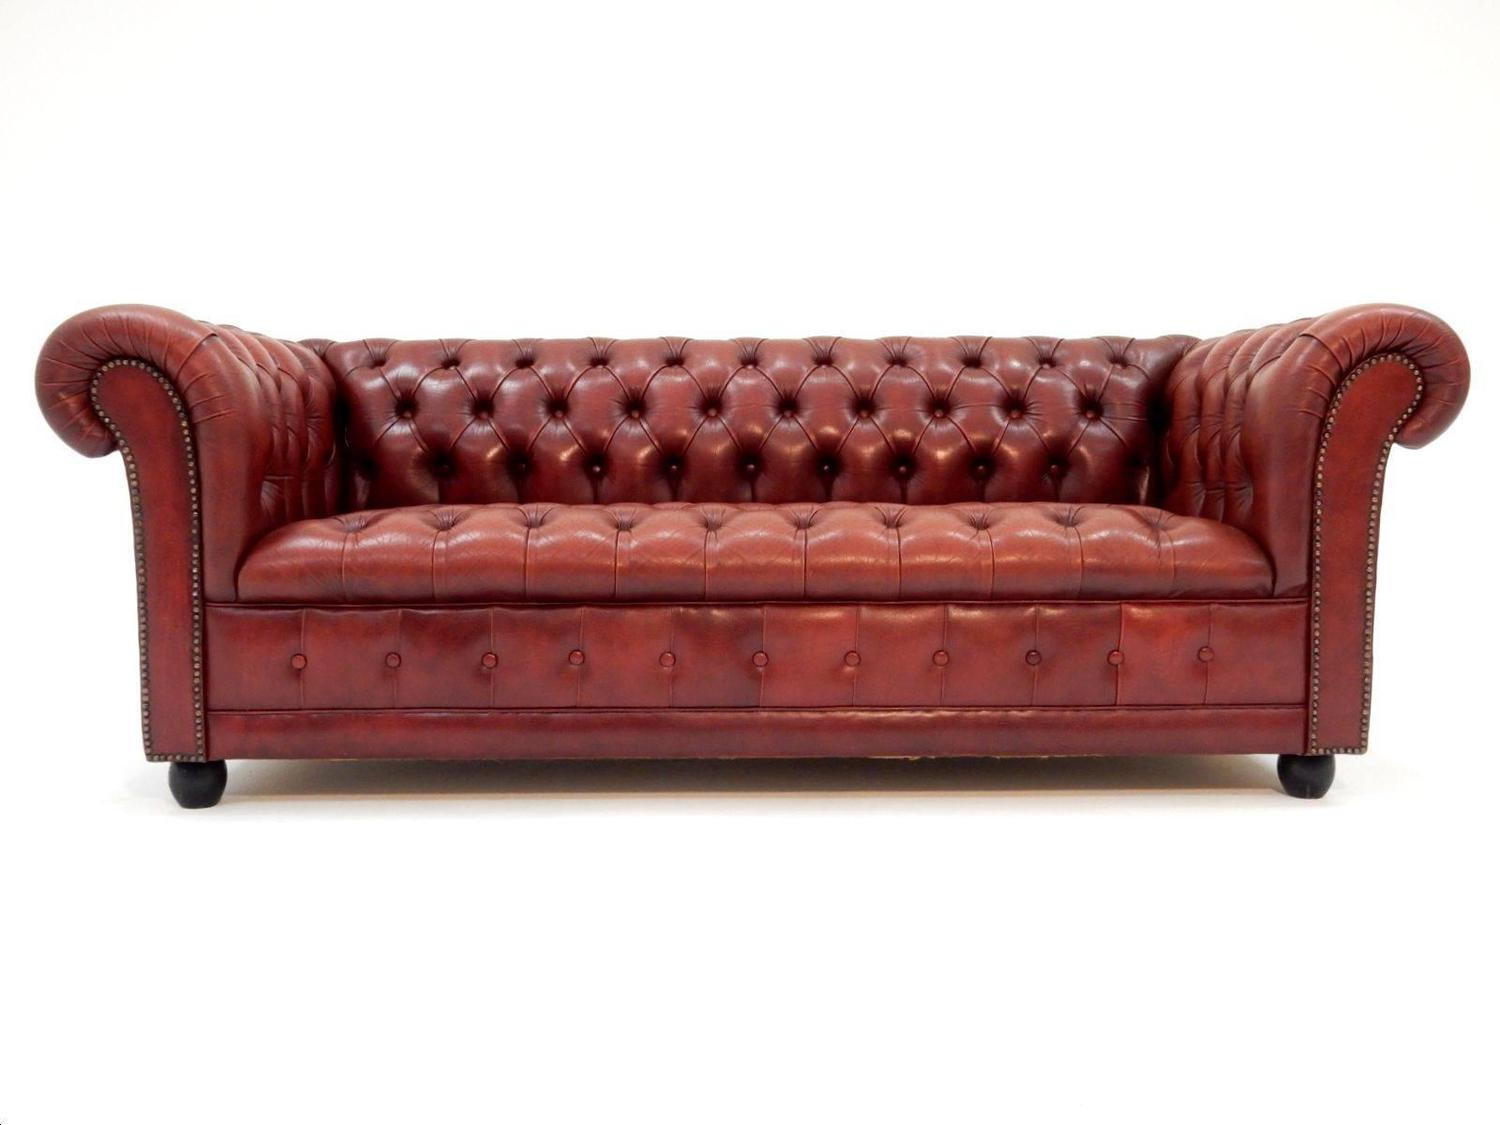 Fabulous Tufted Oxblood Leather British Chesterfield Sofa